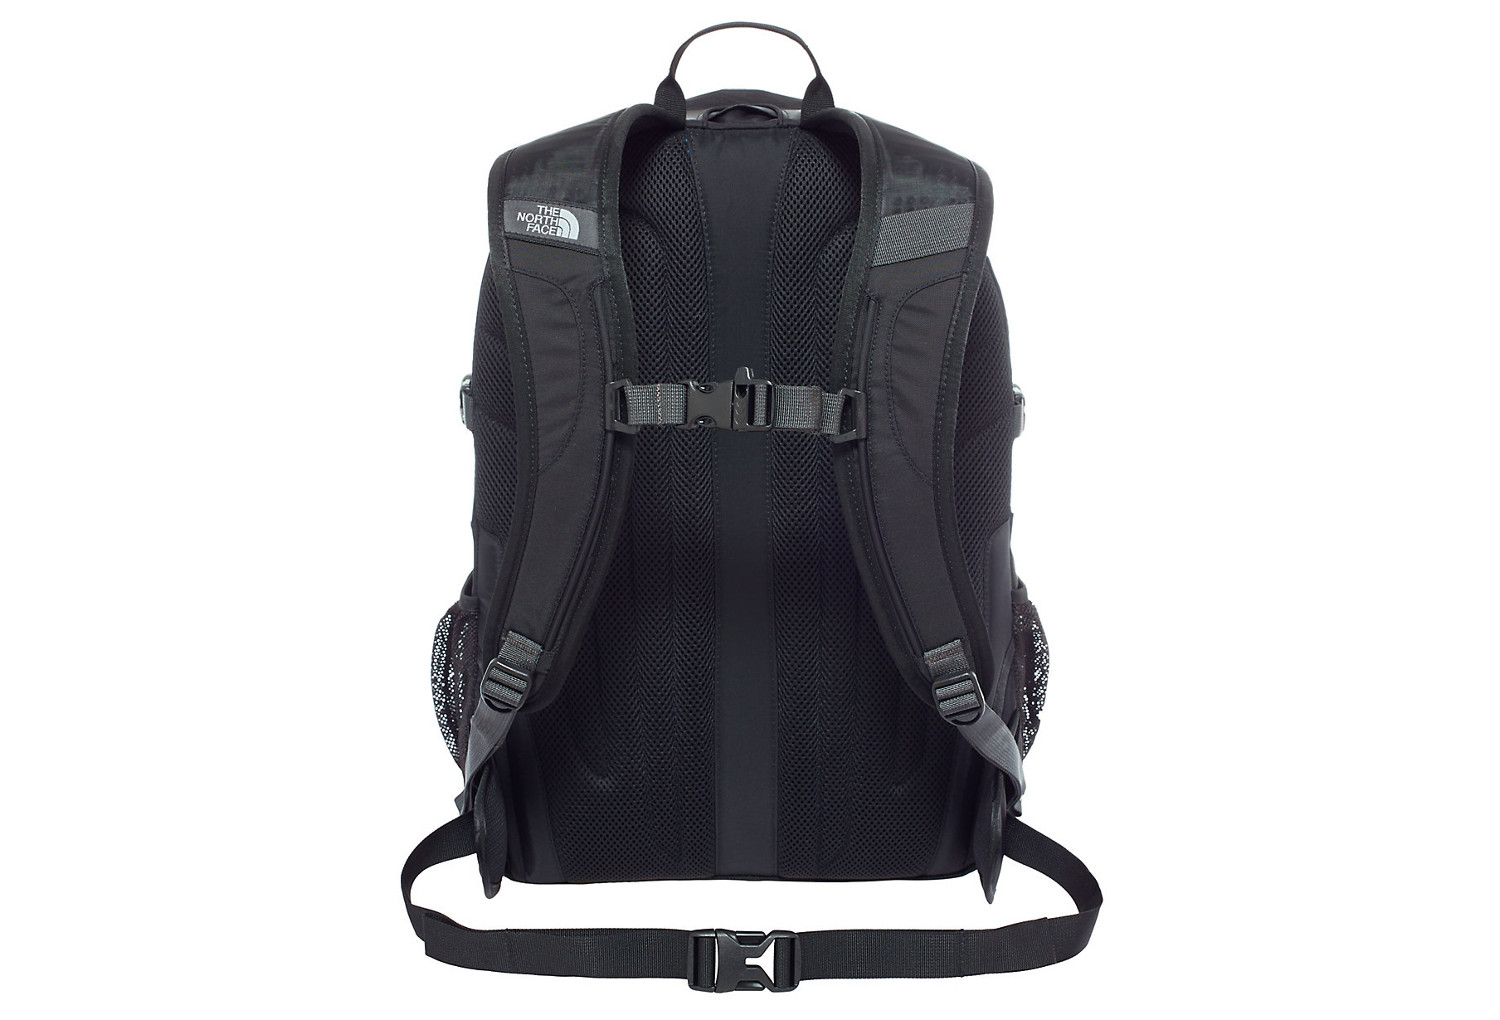 e7c423a03 The North Face Borealis Classic Backpack 29 Litres In Black Grey ...